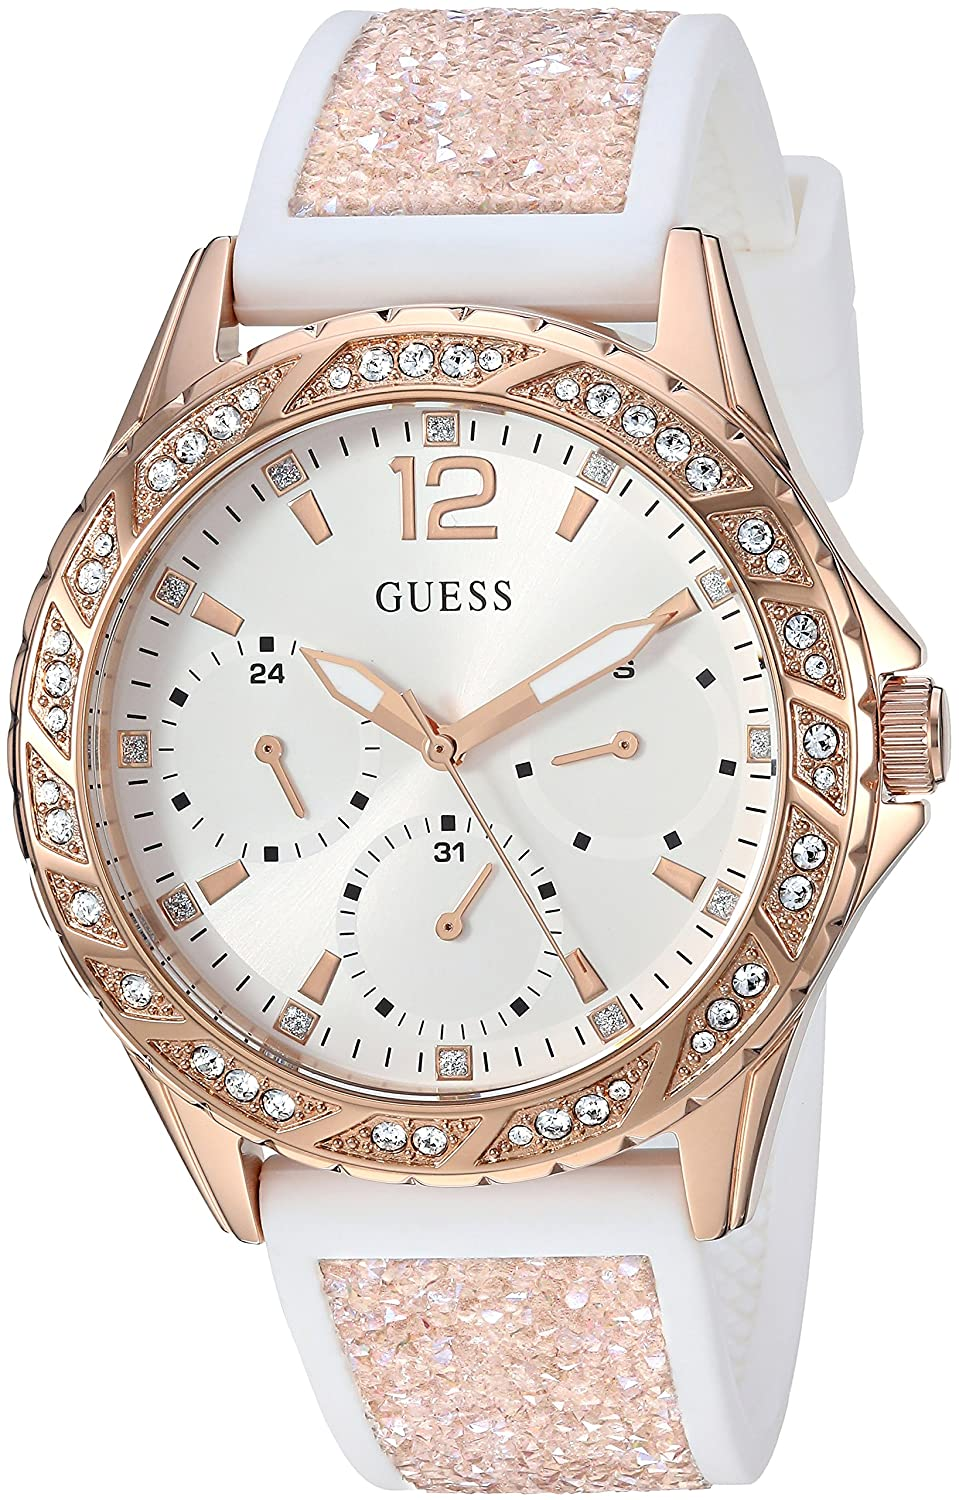 Amazon.com: GUESS Womens Stainless Steel Japanese-Quartz Watch with Crystal Silicone Strap, Color: White/Rose Gold-Tone, 20: ((Model: U1096L2): Watches